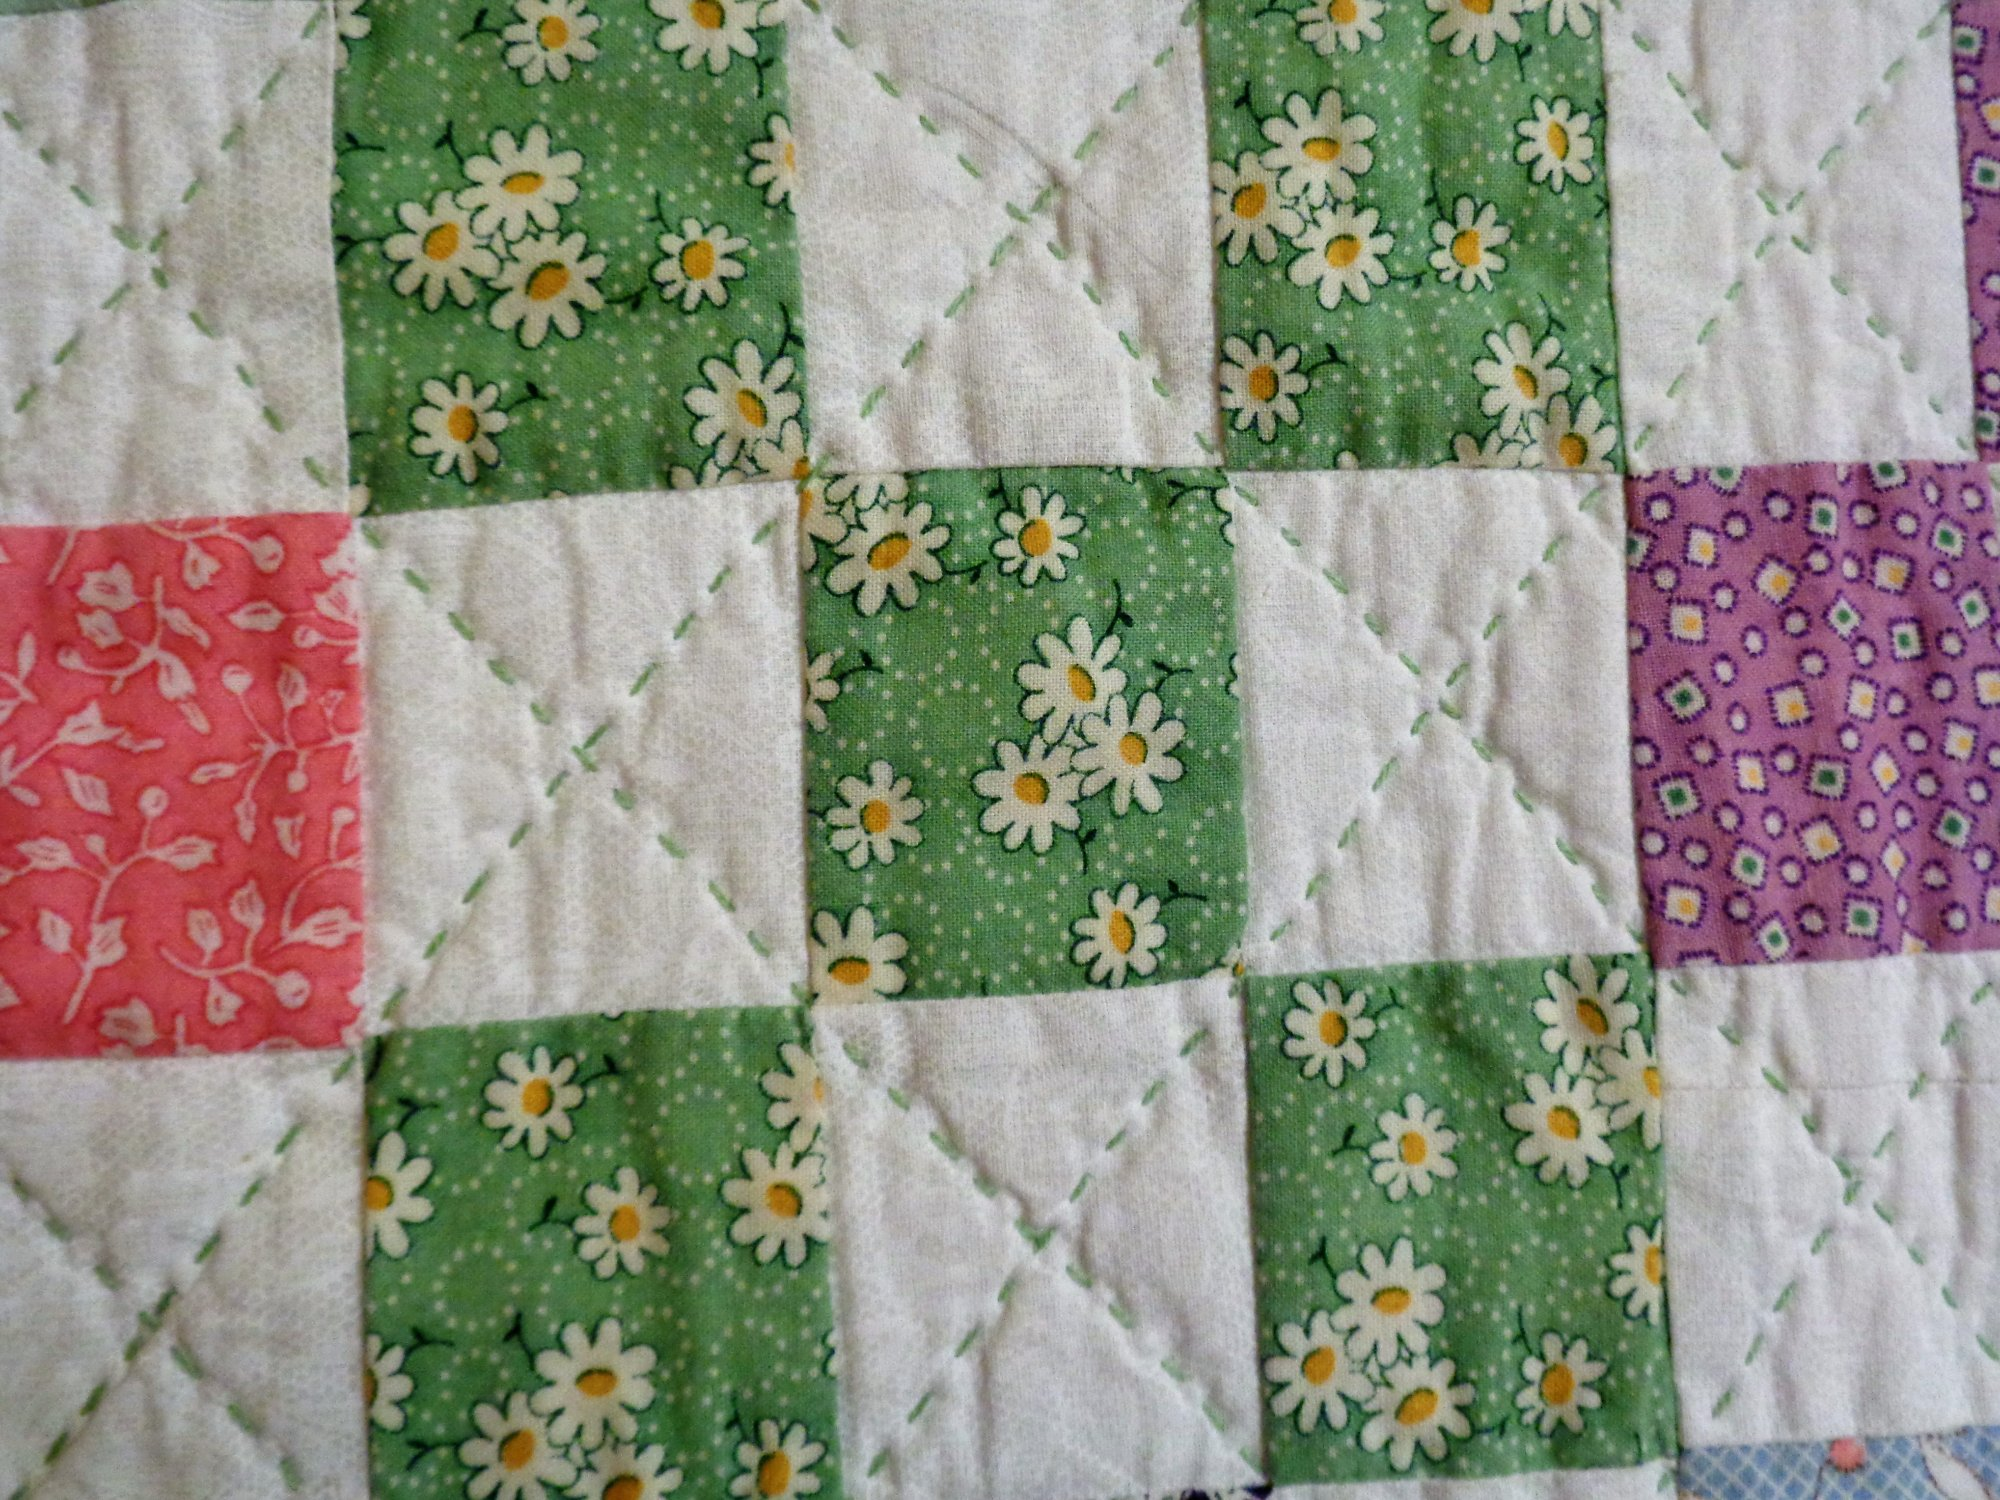 The Art of Hand Quilting : quilting meaning - Adamdwight.com